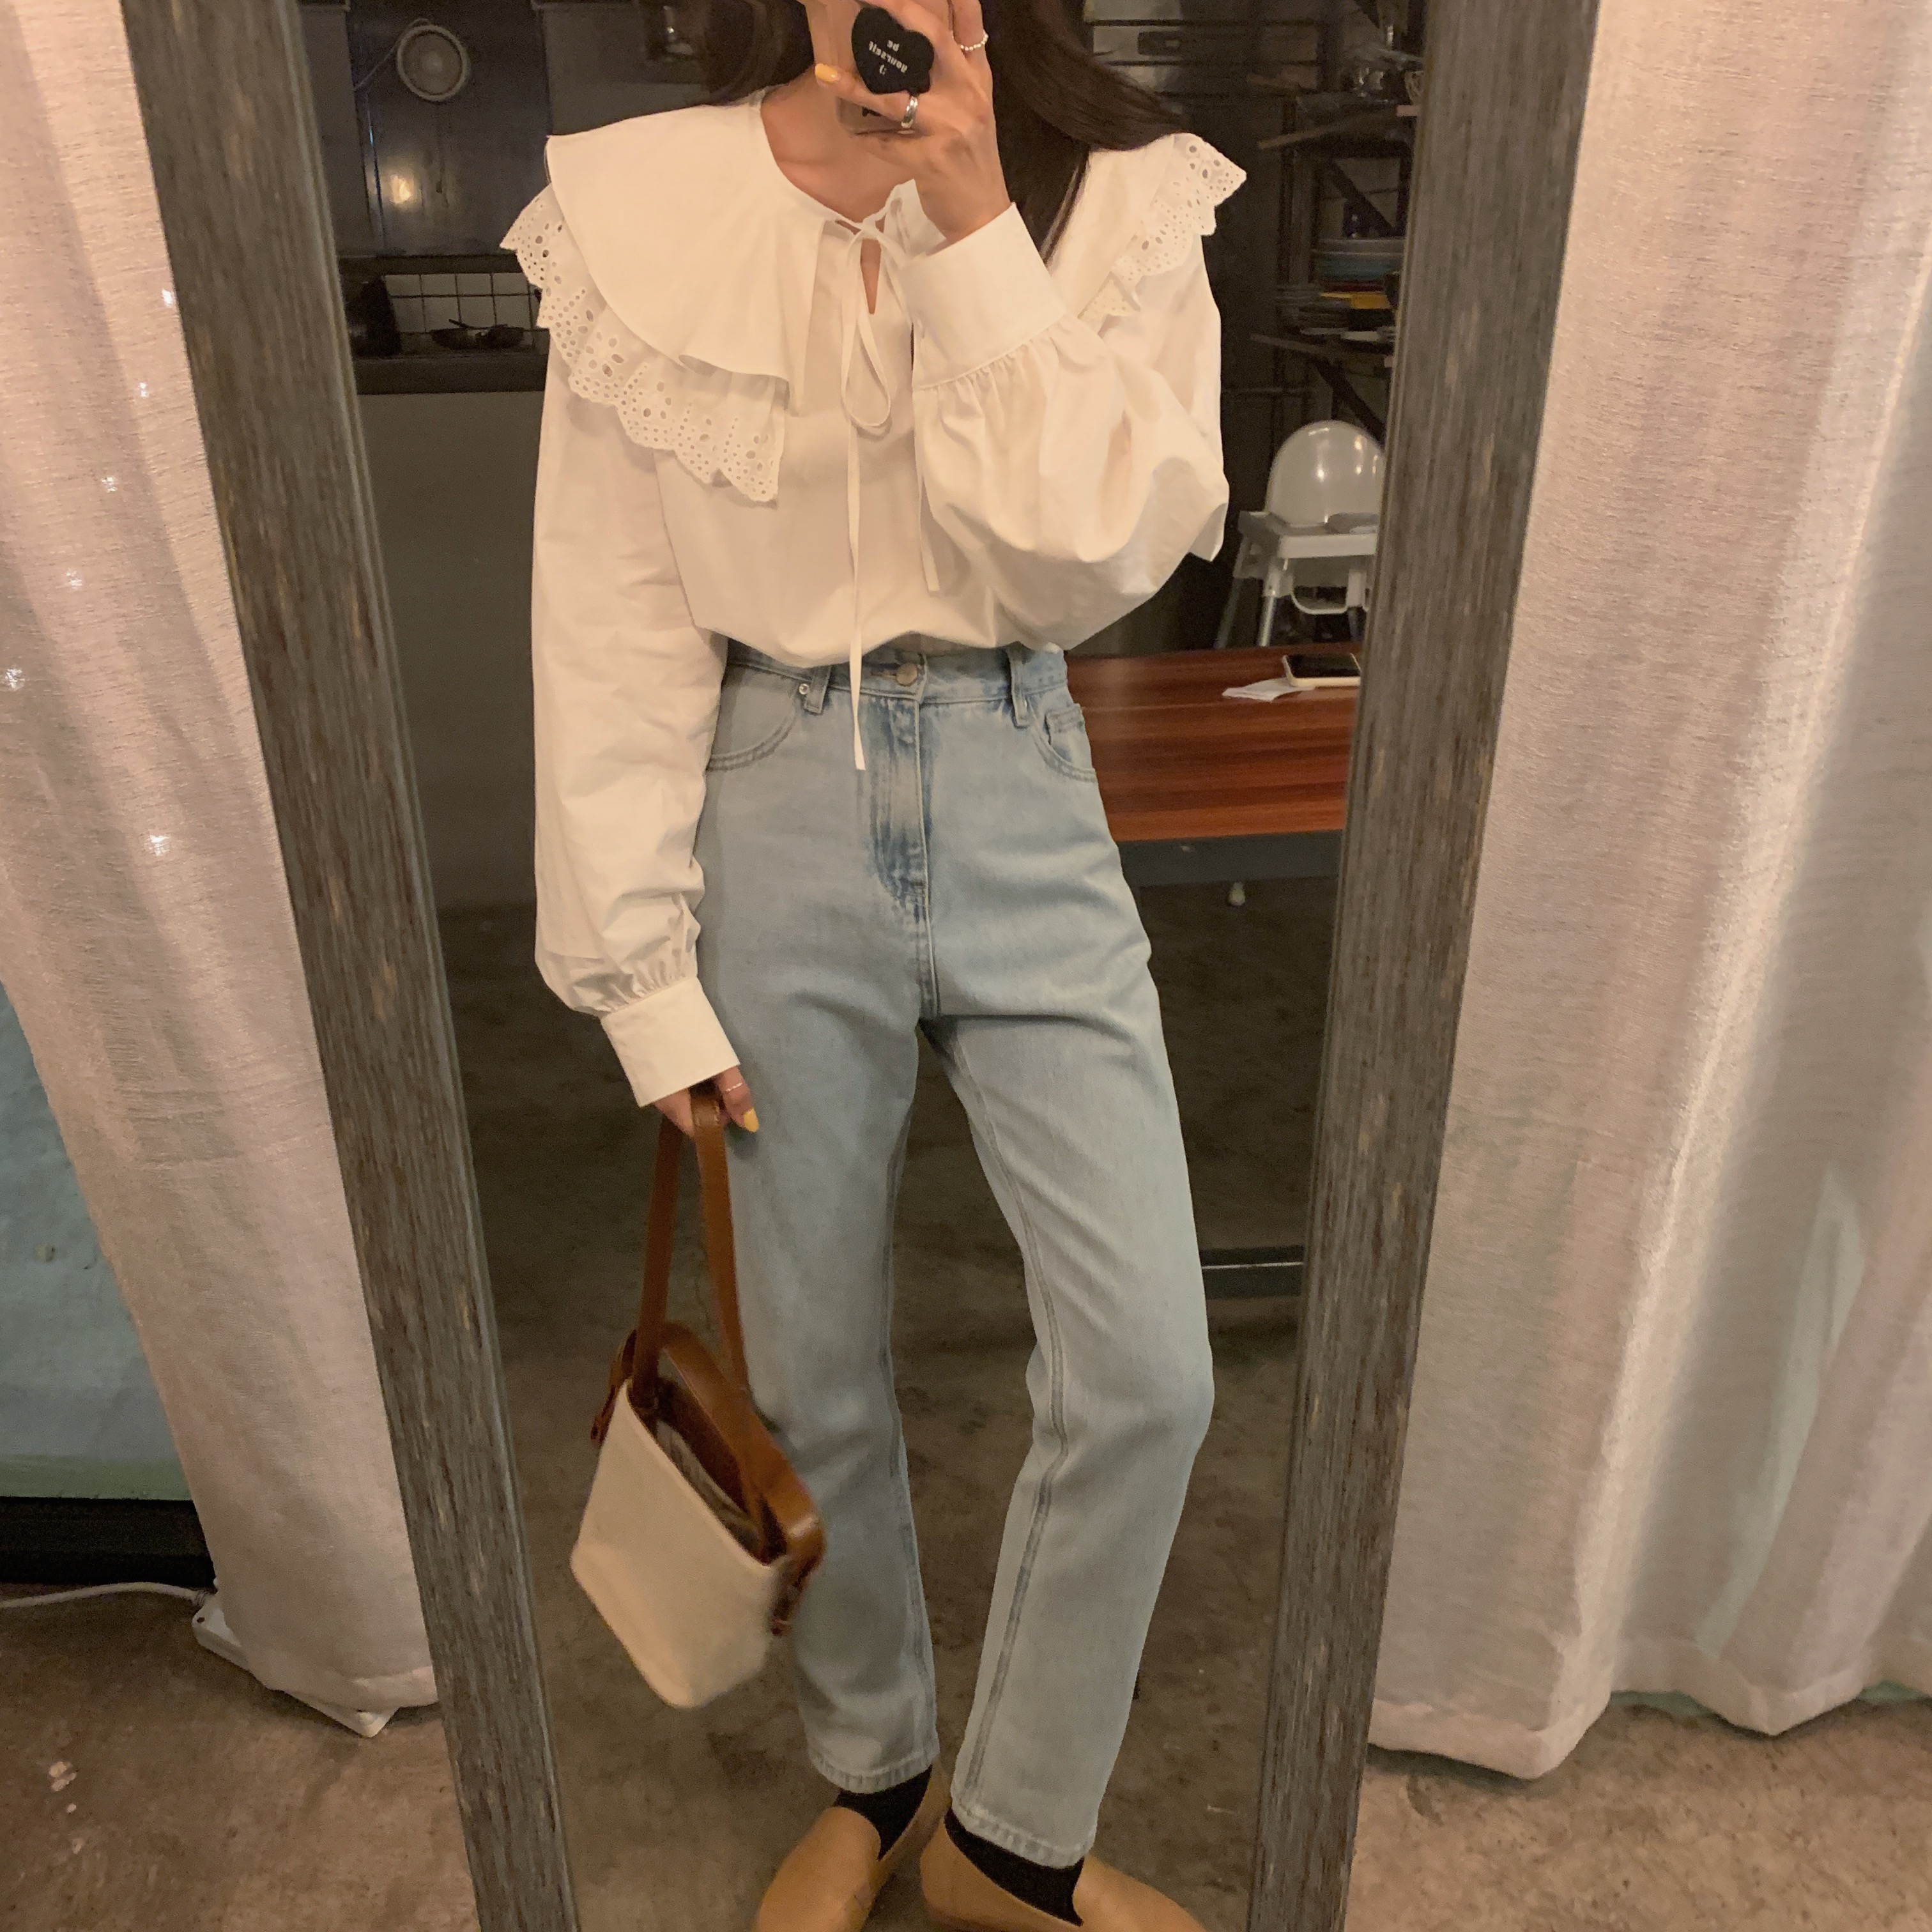 H58f49a8721ca4edda1eb73edc9114c88Z - Spring / Autumn Korean Lace-Up Hollow Out Collar Long Sleeves Loose Solid Blouse